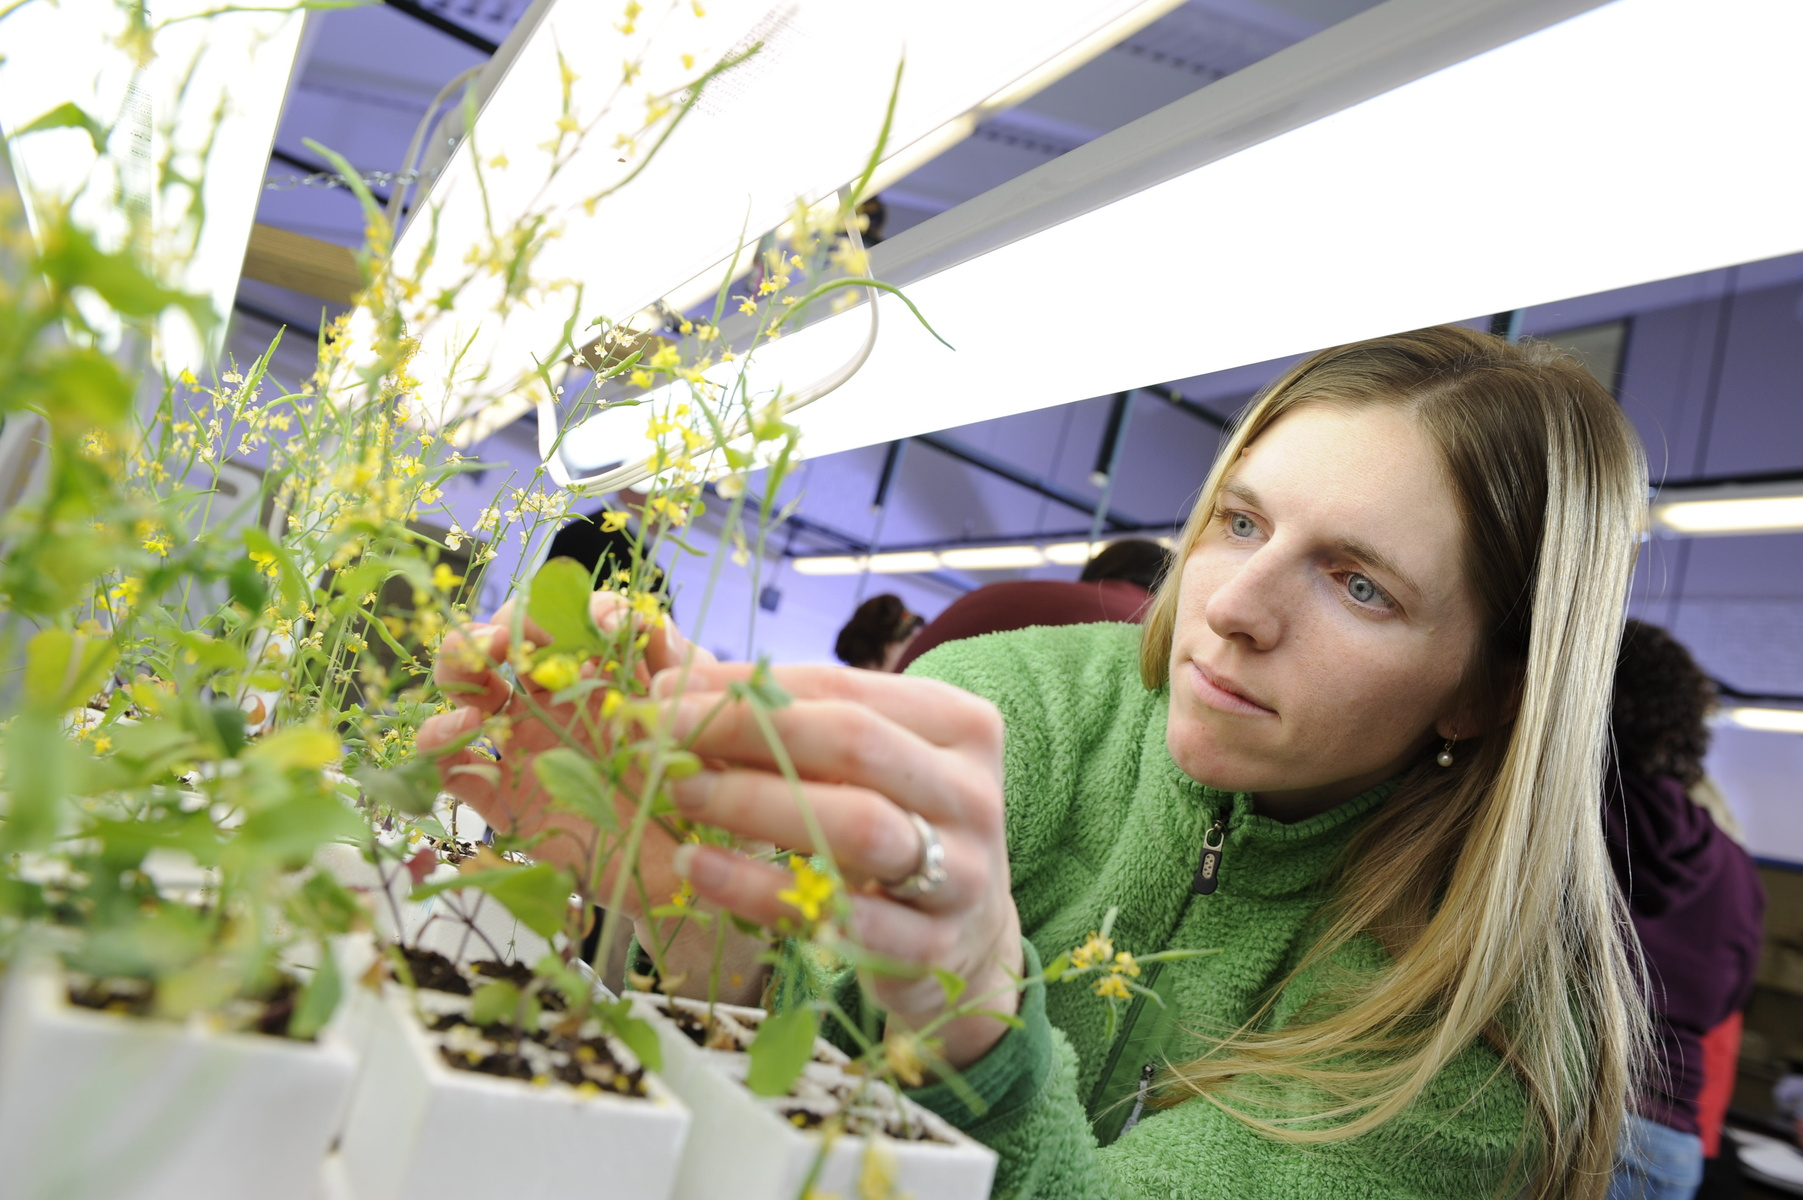 A female student collects research data from a plant